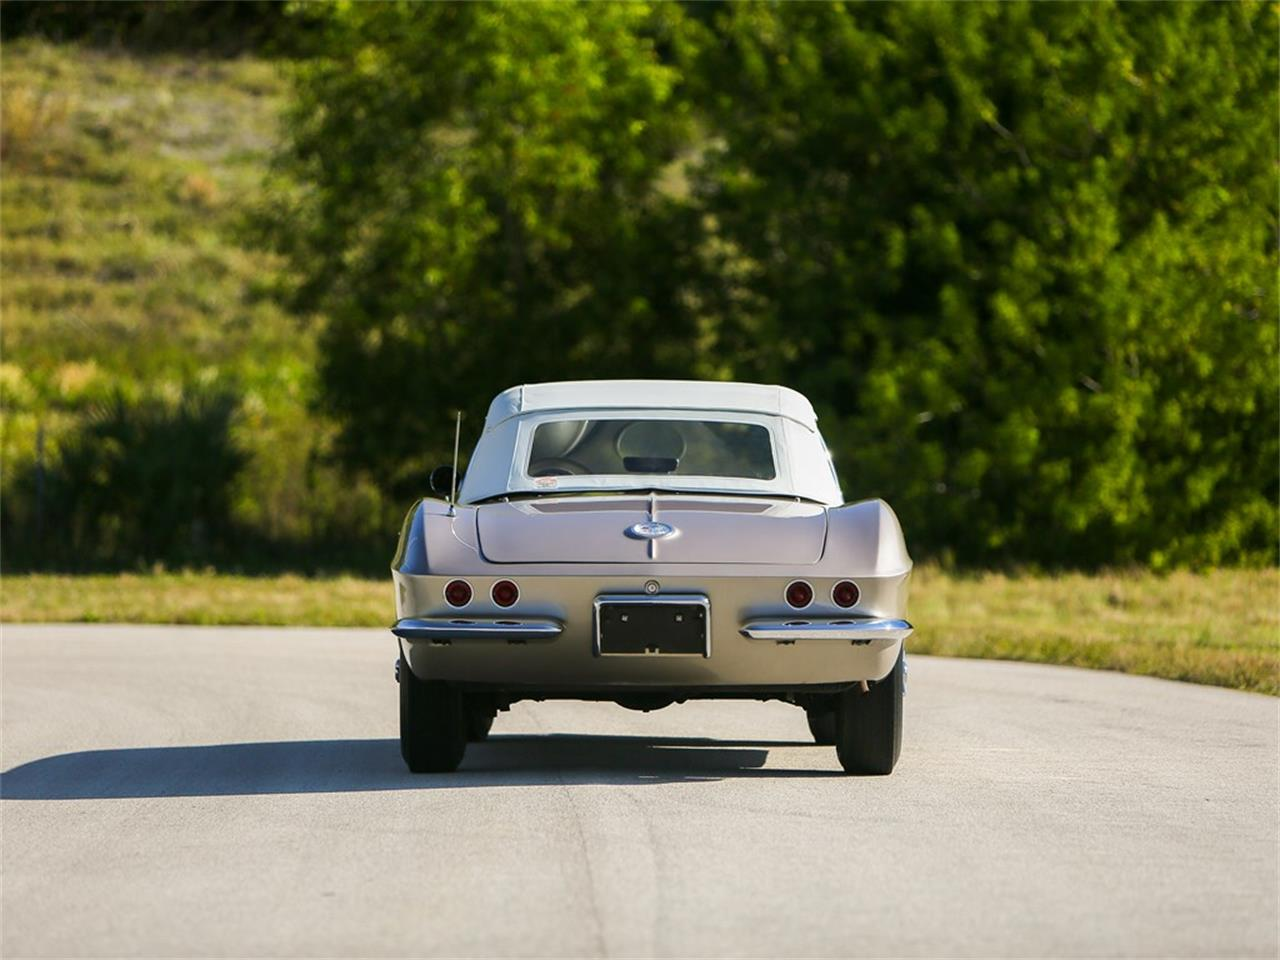 Large Picture of '61 Chevrolet Corvette located in Fort Lauderdale Florida Auction Vehicle - PIVI